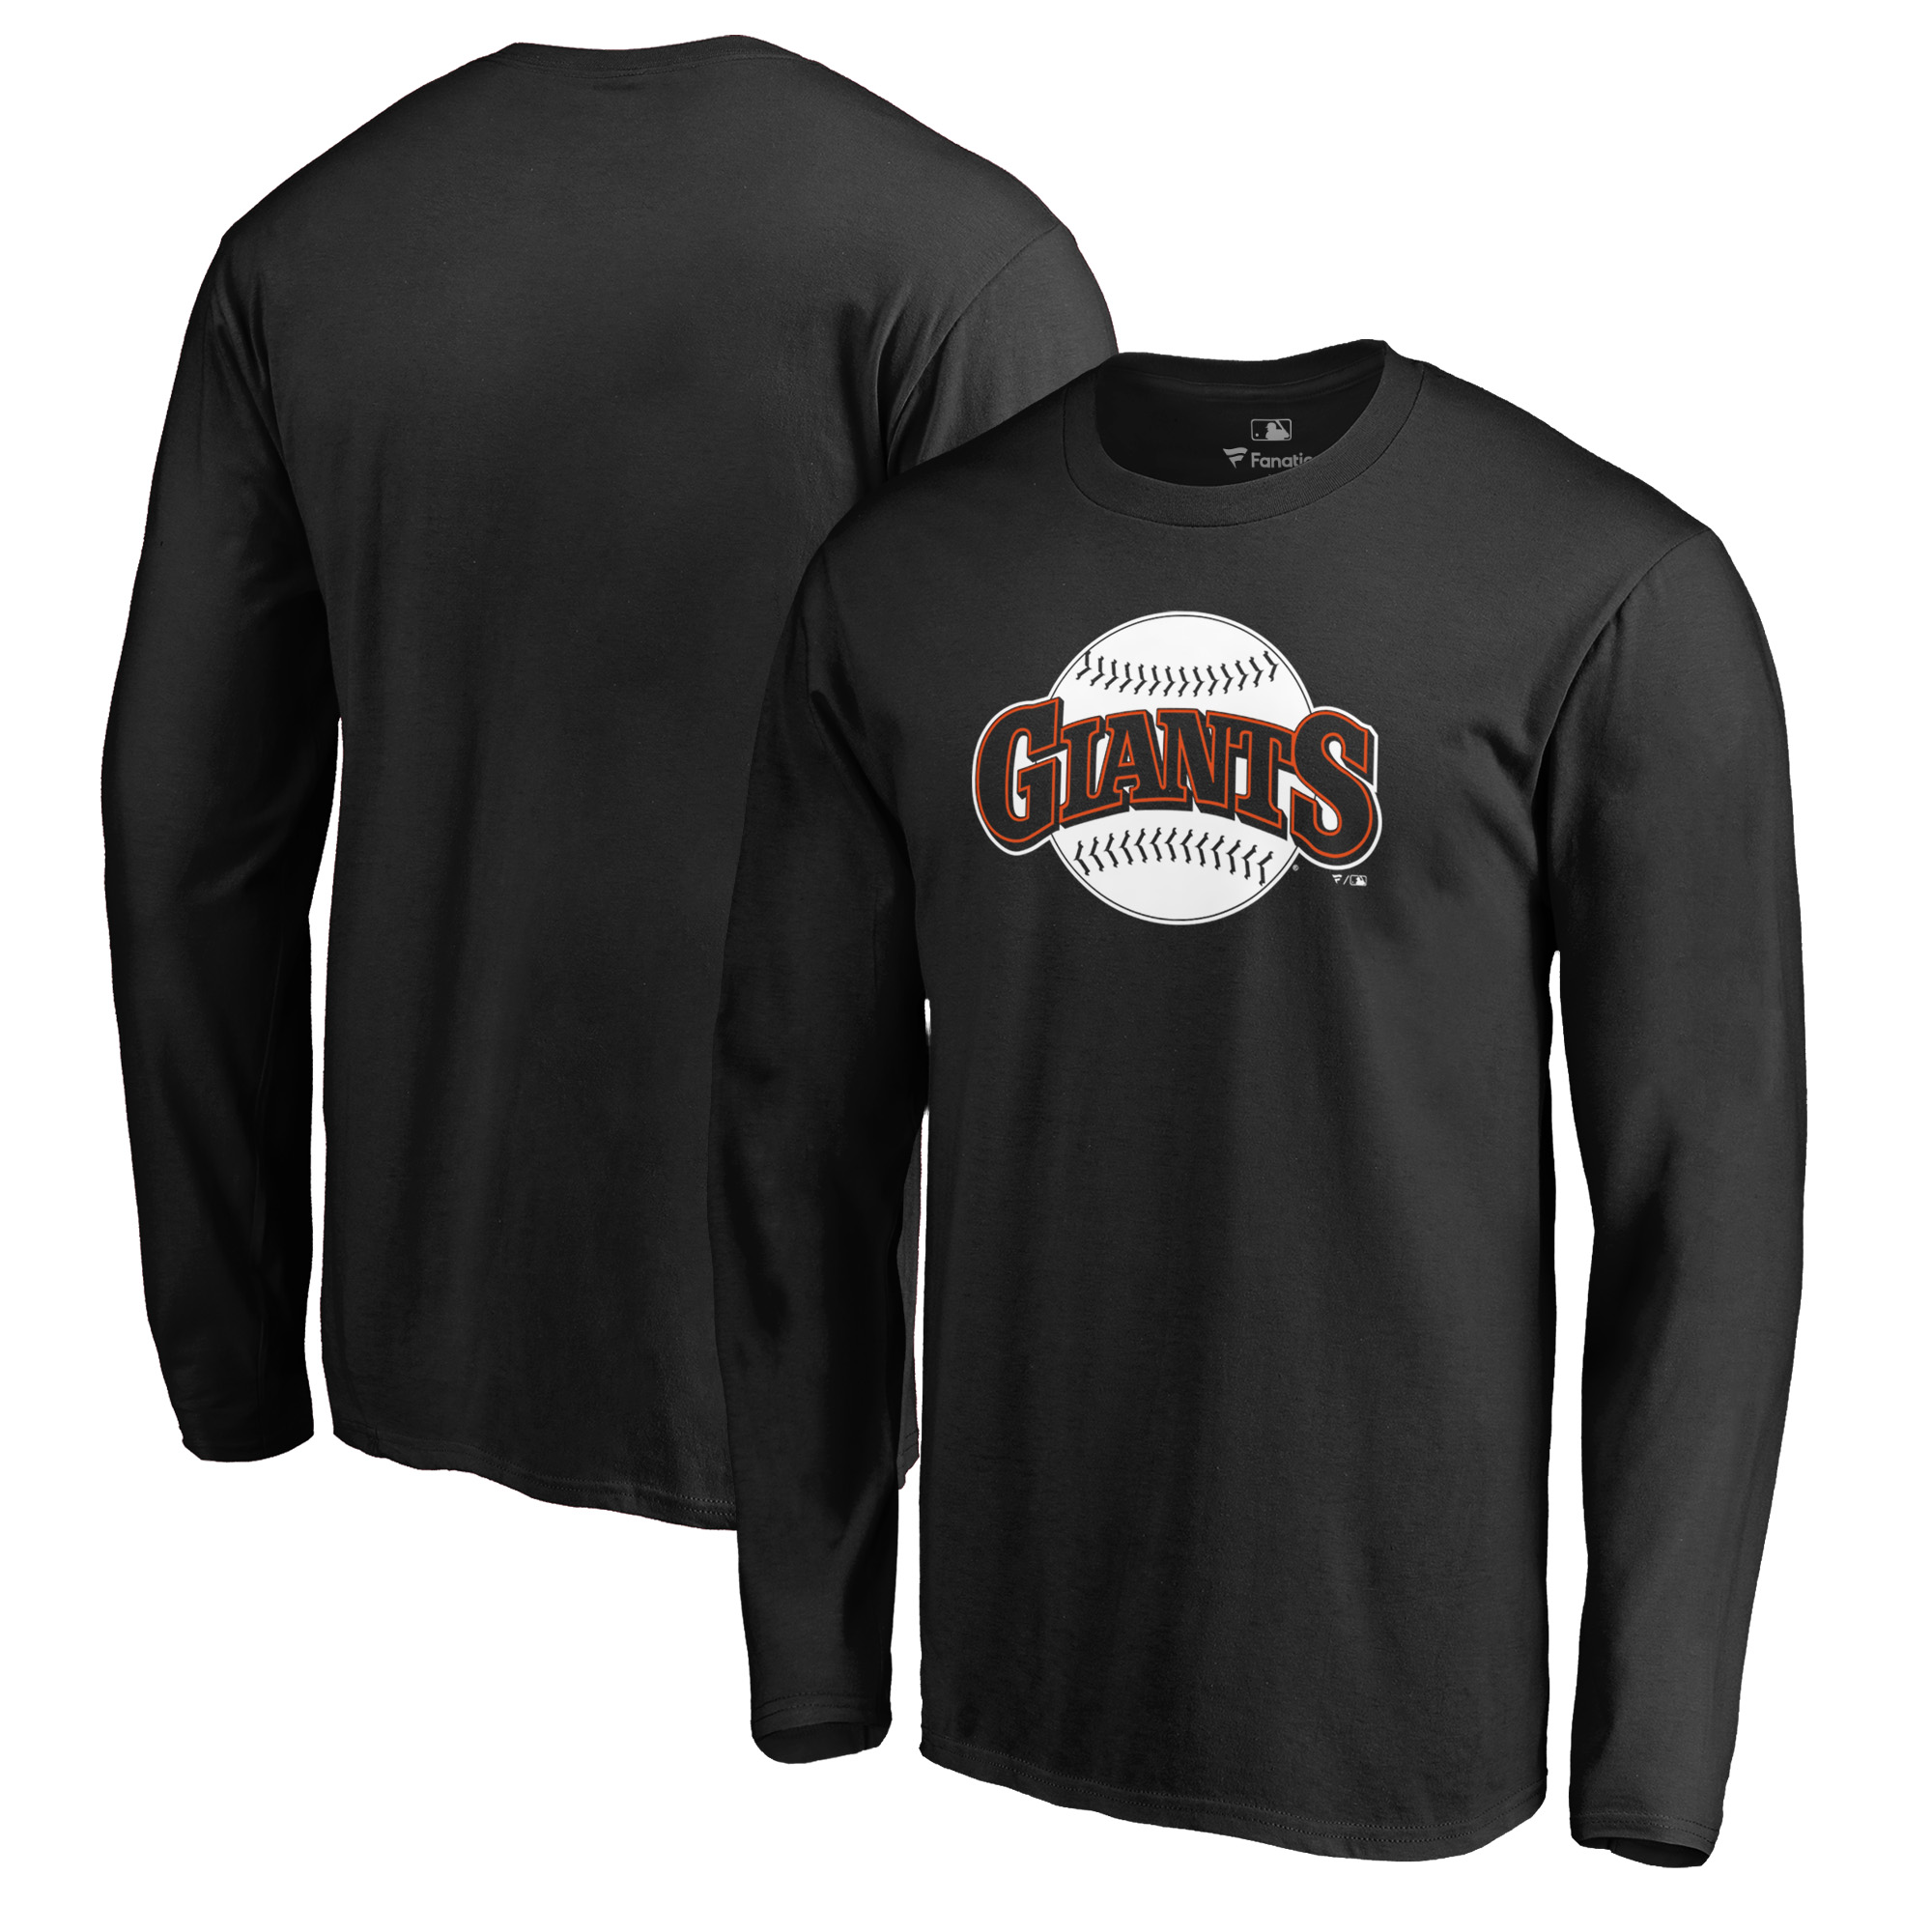 San Francisco Giants Fanatics Branded Cooperstown Collection Huntington Long Sleeve T-Shirt - Black